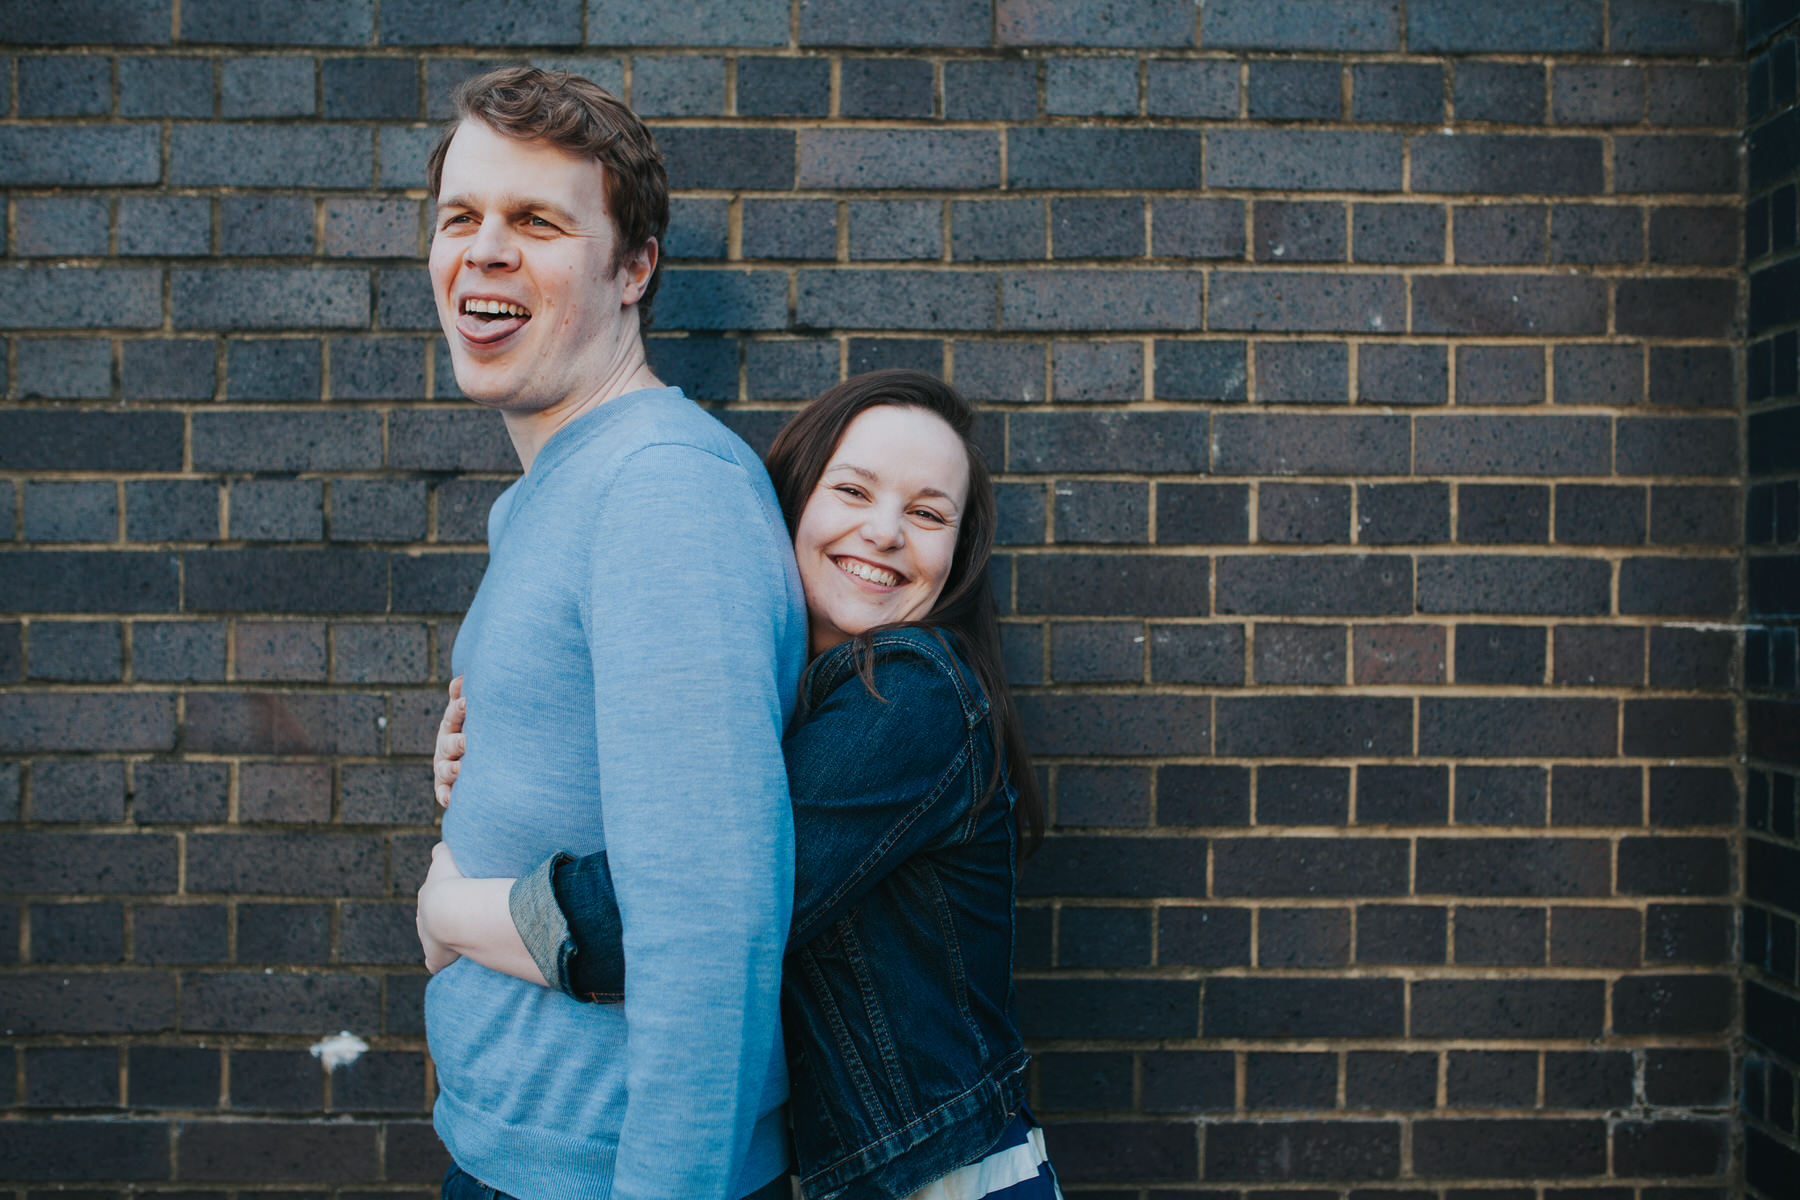 57-Quirky-engagement-London-brick-wall-squeeze.jpg